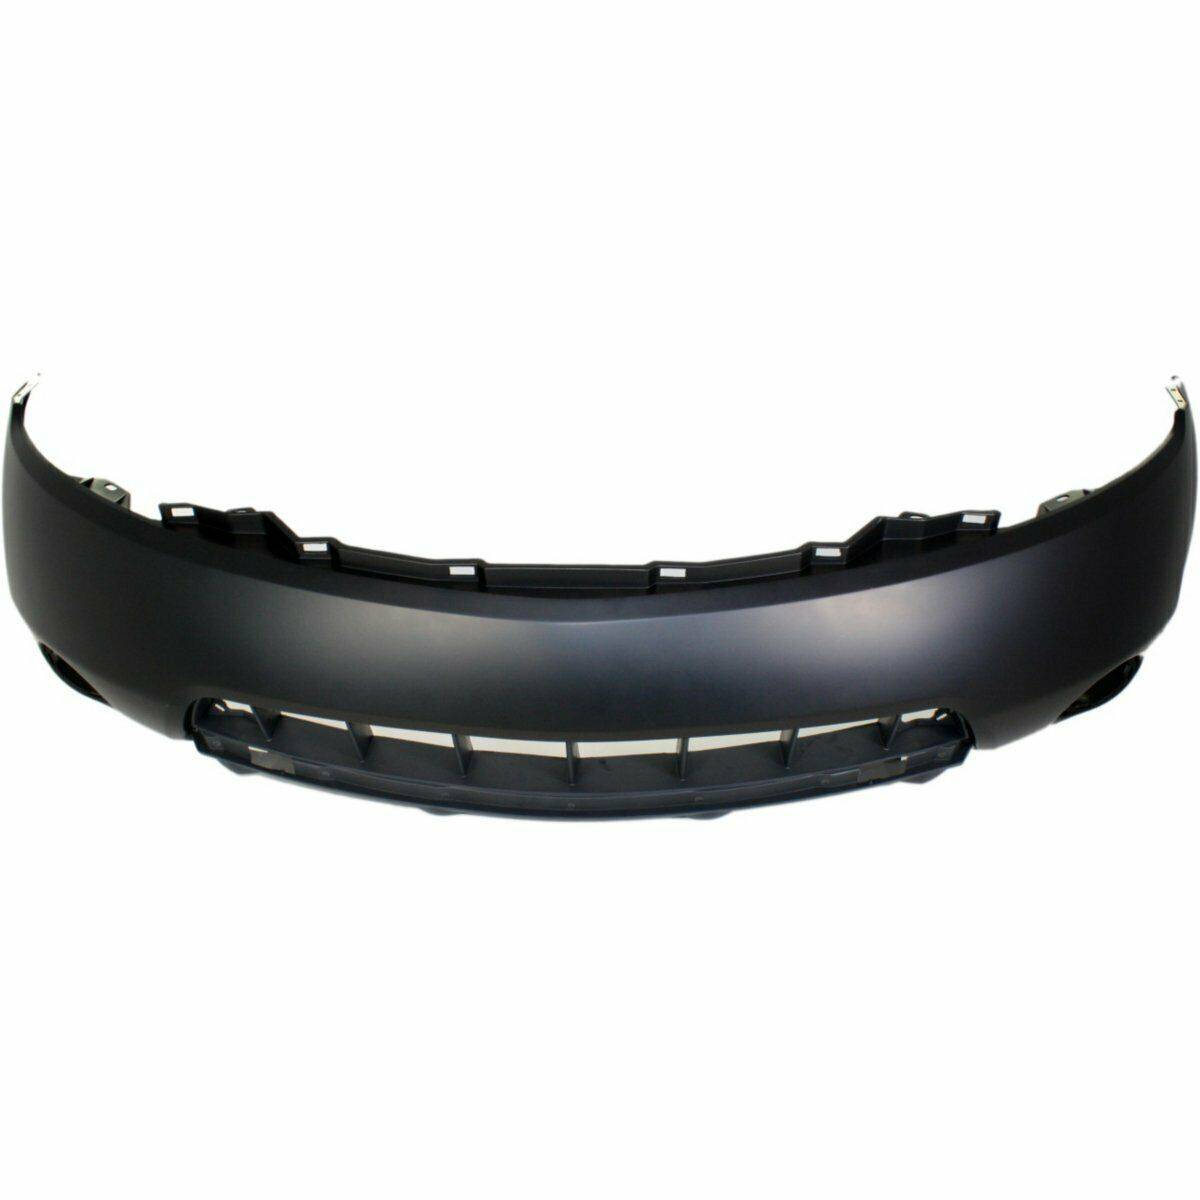 2006-2007 Nissan Murano SUV Front Bumper Painted to Match